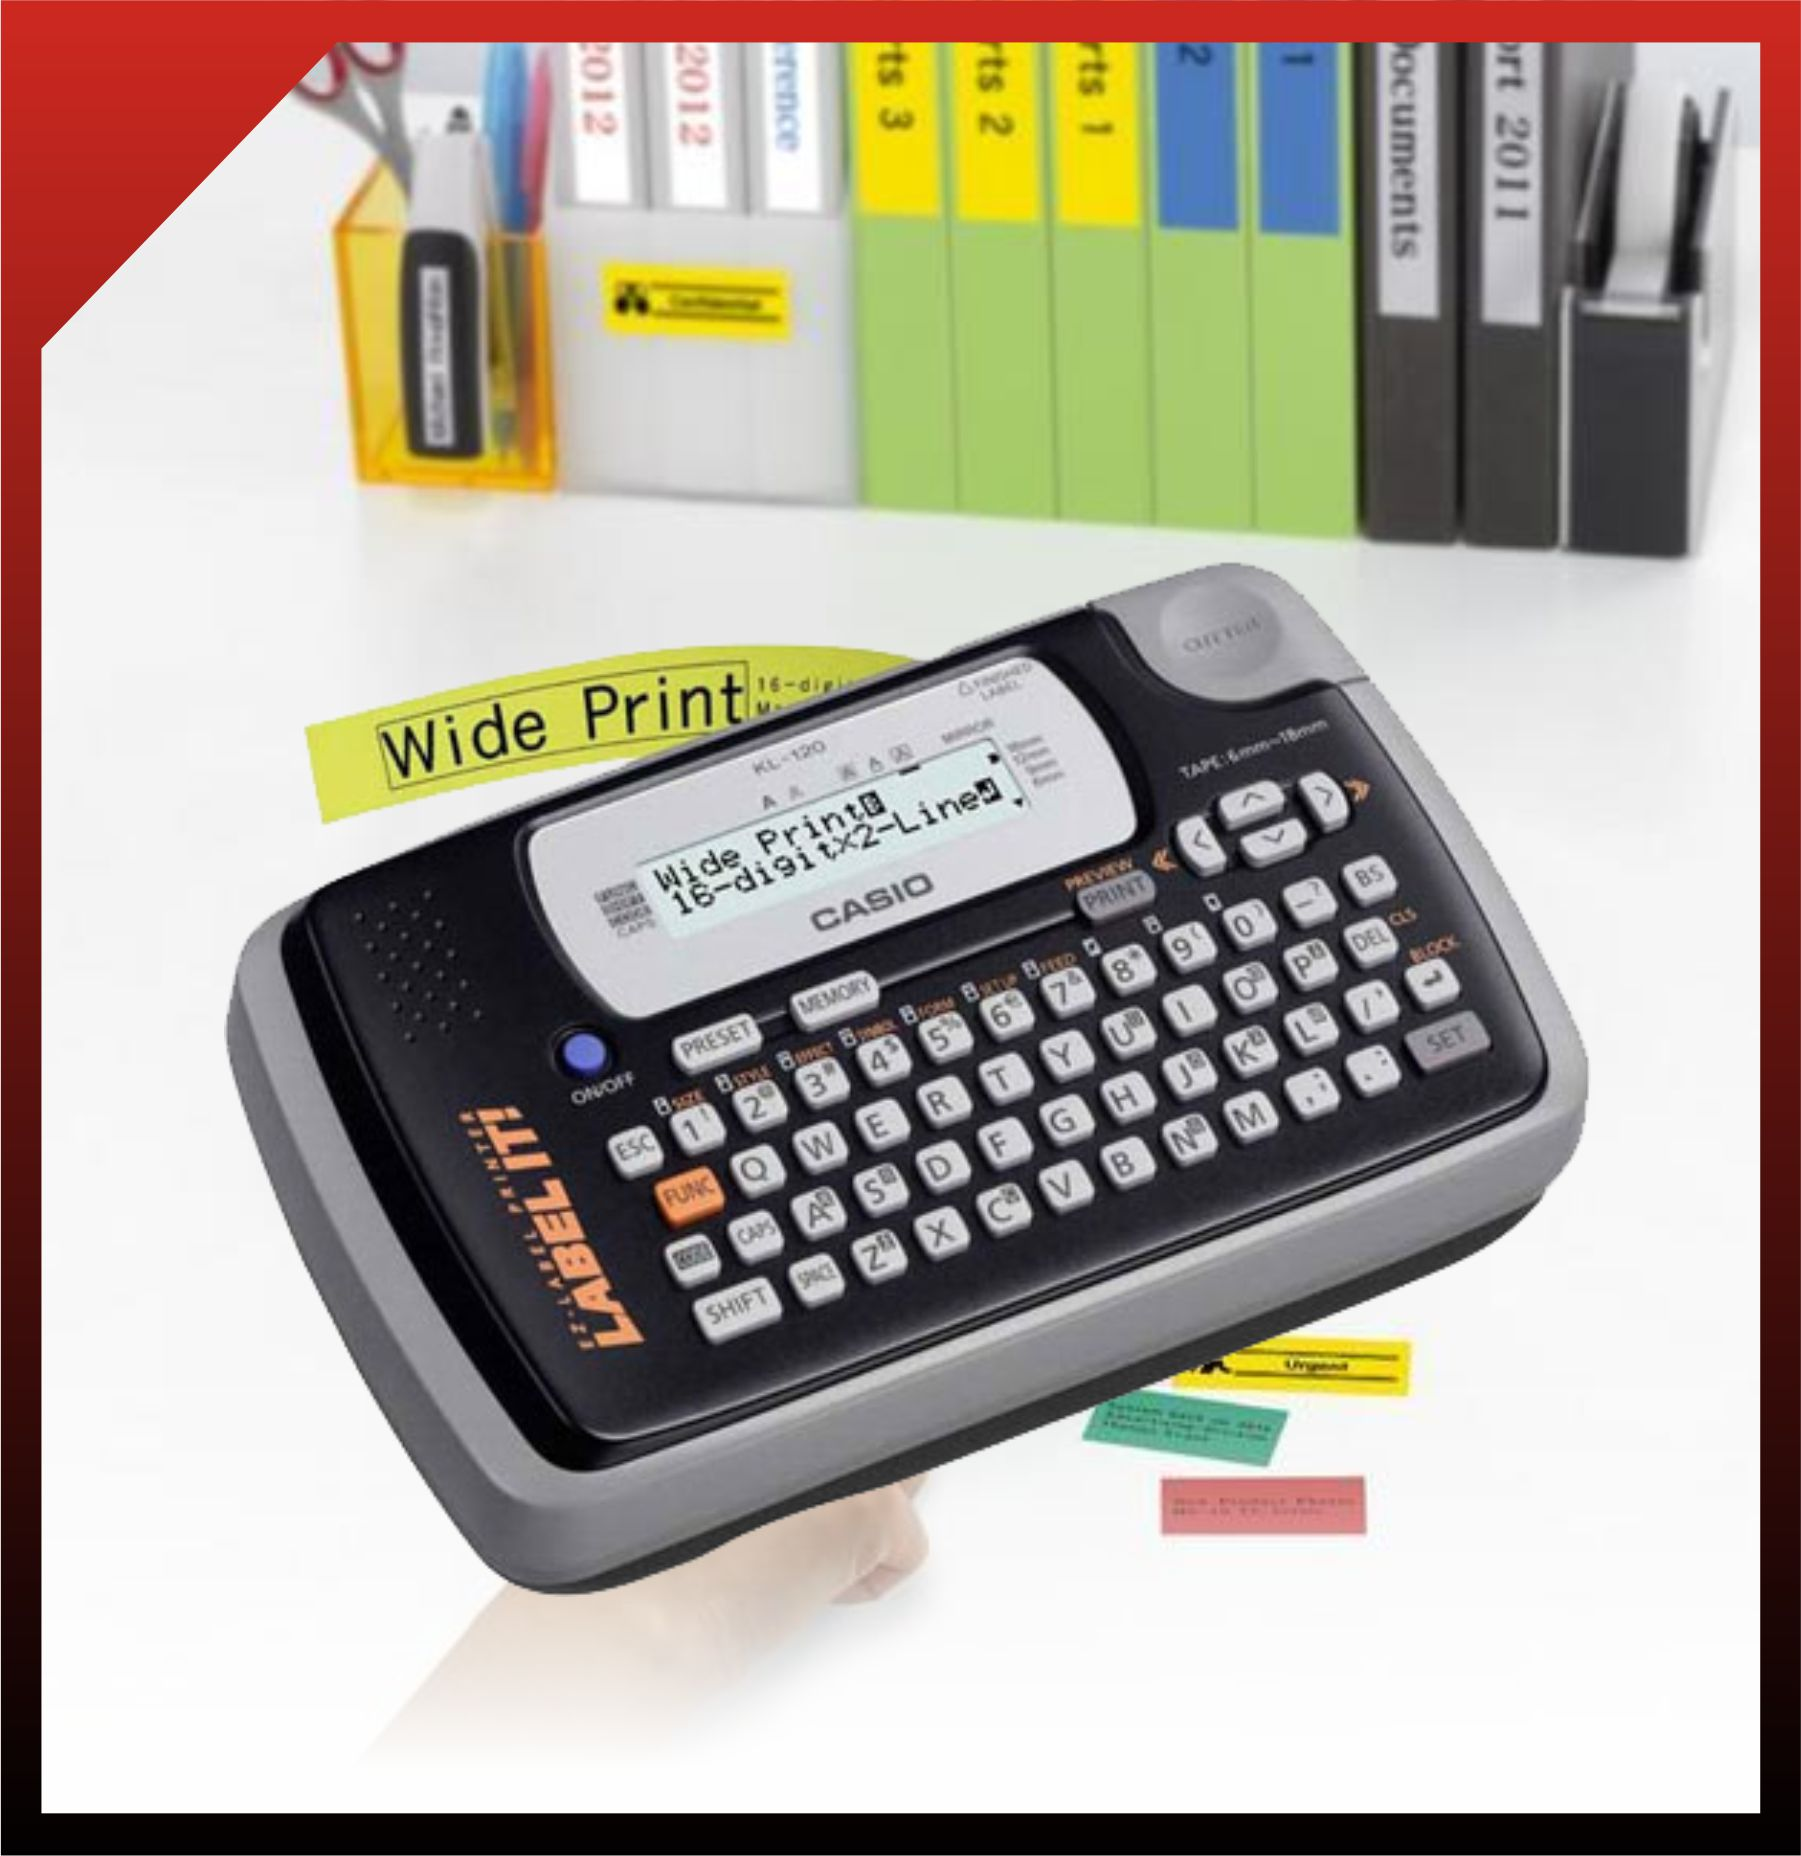 Casio Label Printers